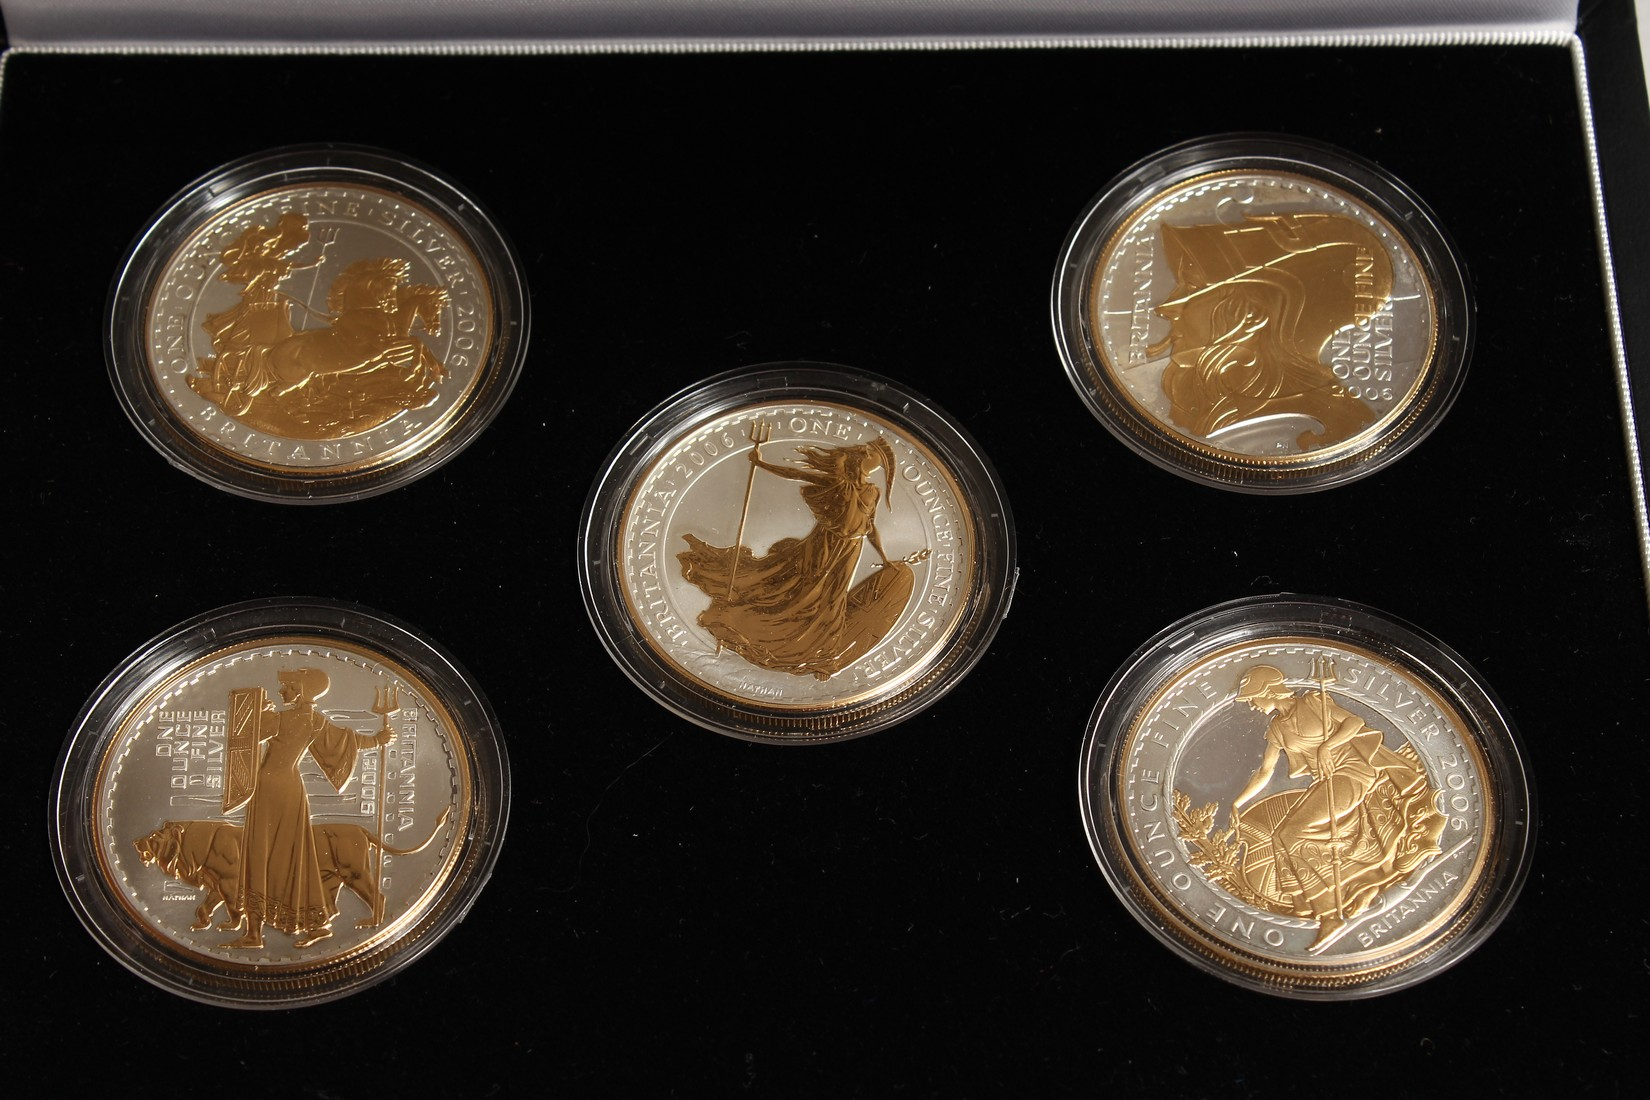 THE 2006 BRITAINNIA SILHOUETTE COLLECTION, silver and gold proof set, no. 0191 of 3000 issued with